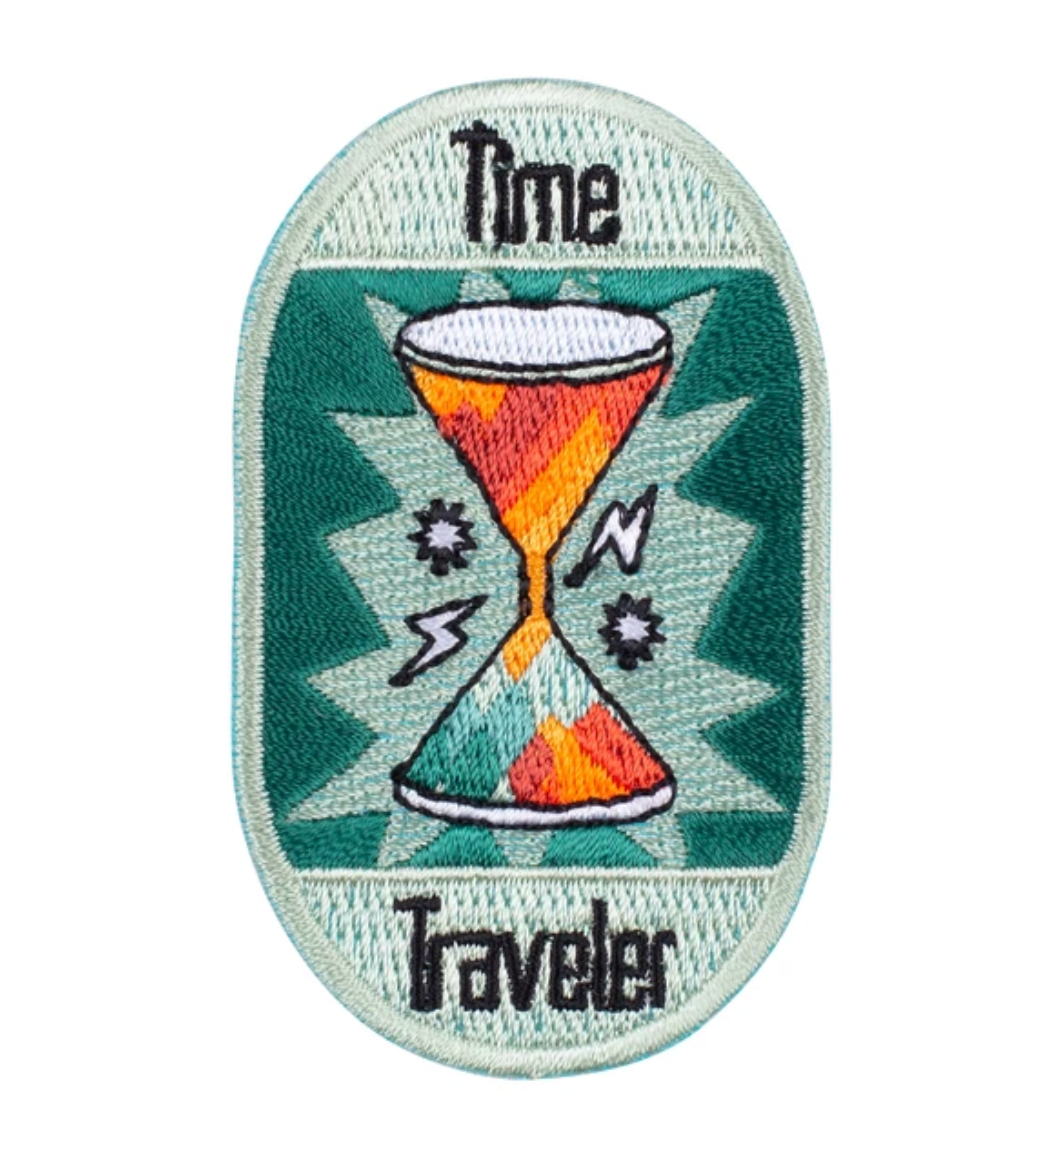 Patch: Time Traveler